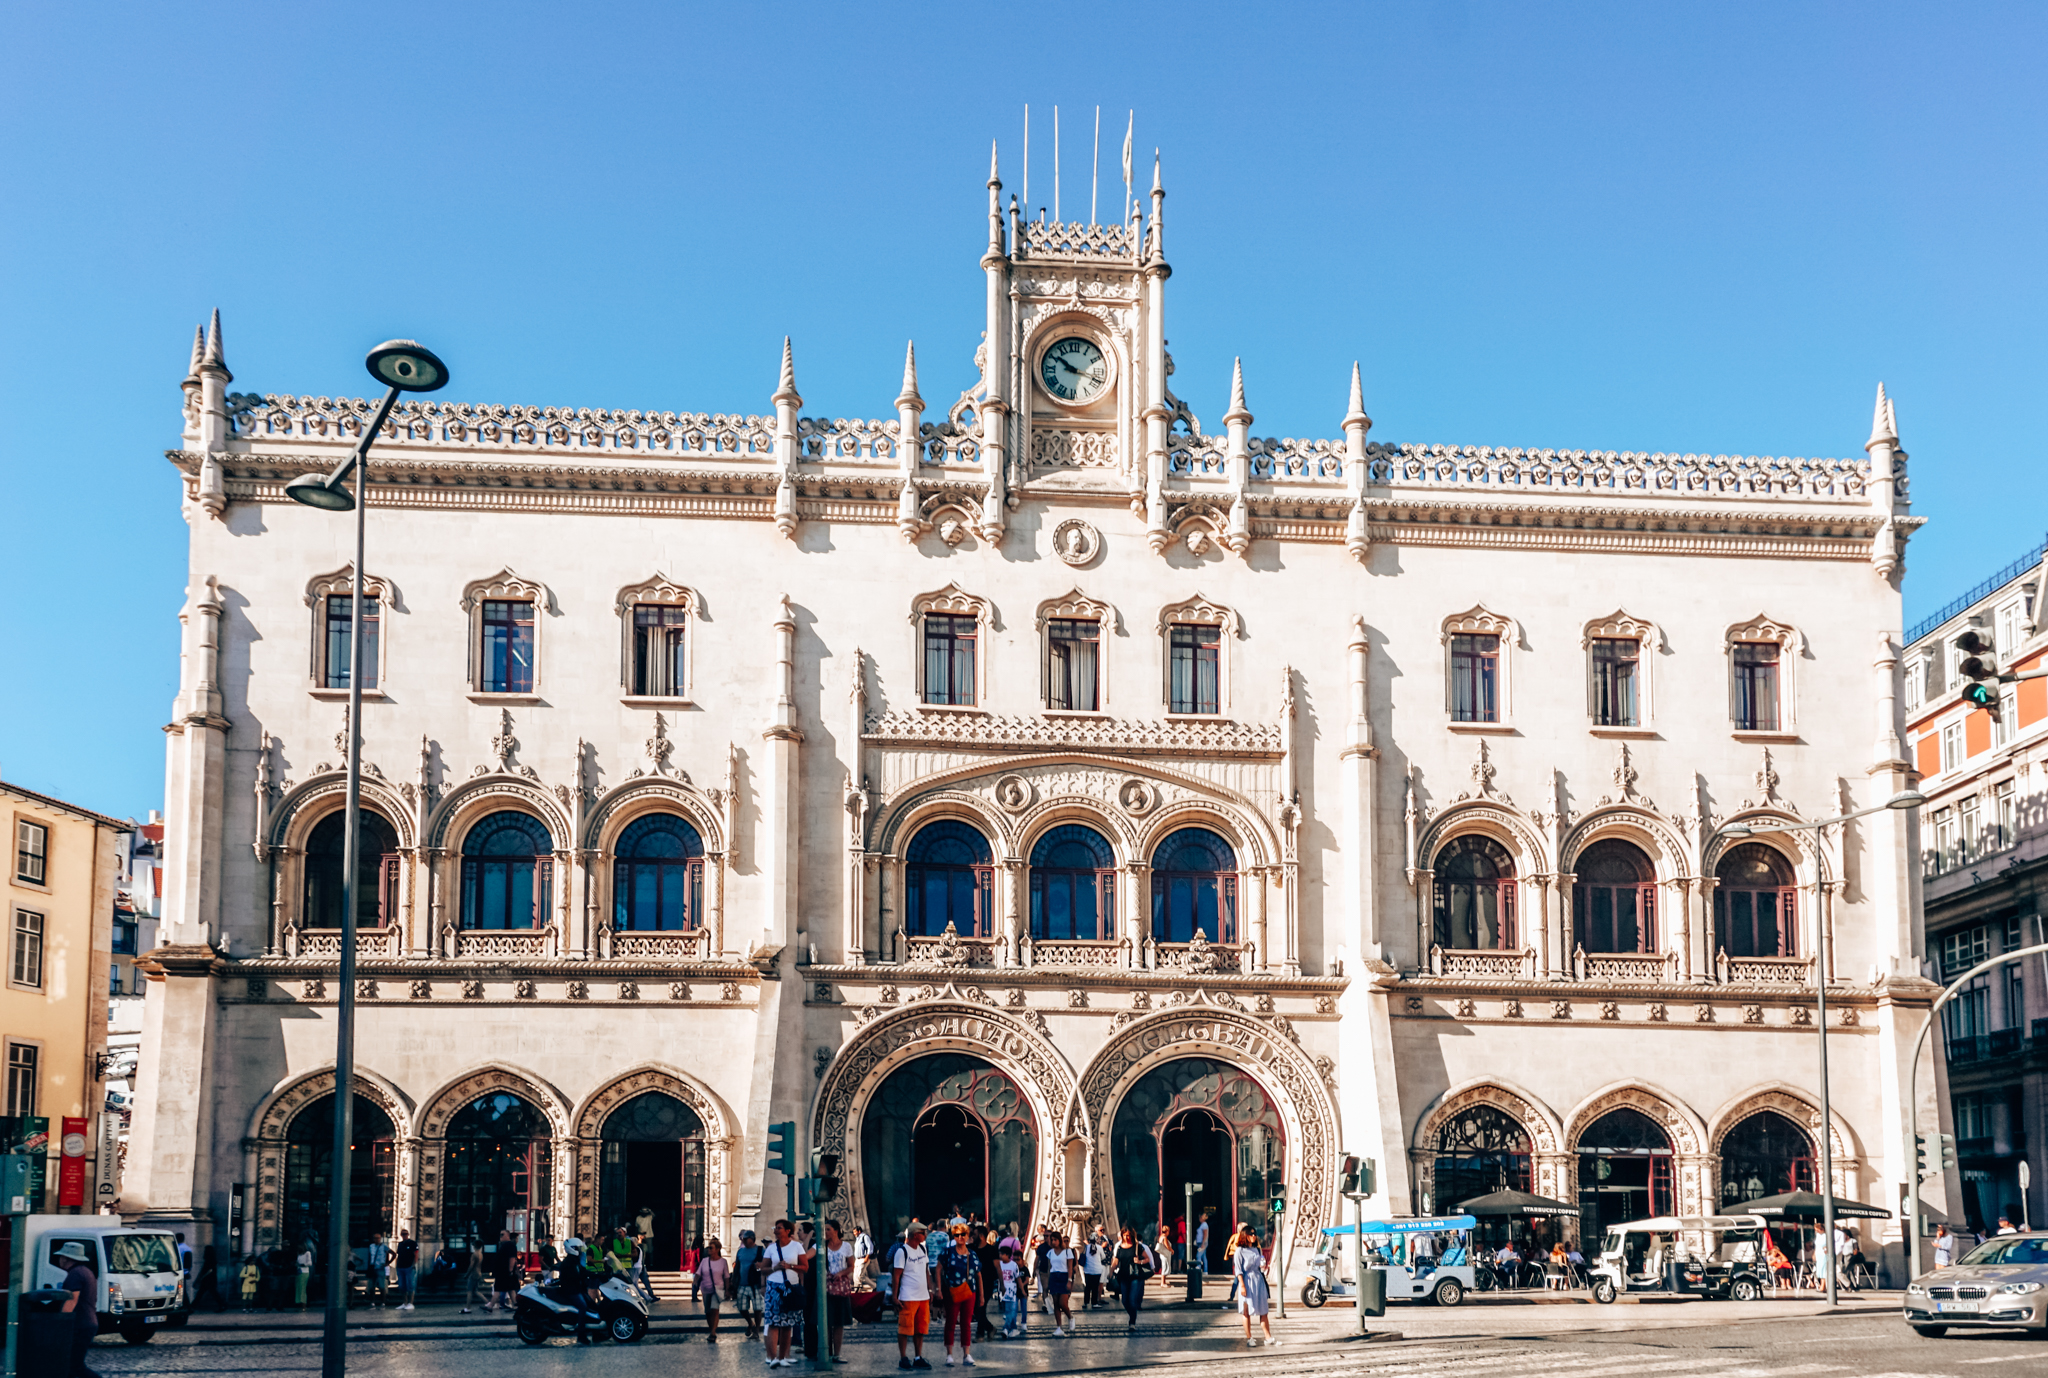 Rossio Railway Station in Lisbon